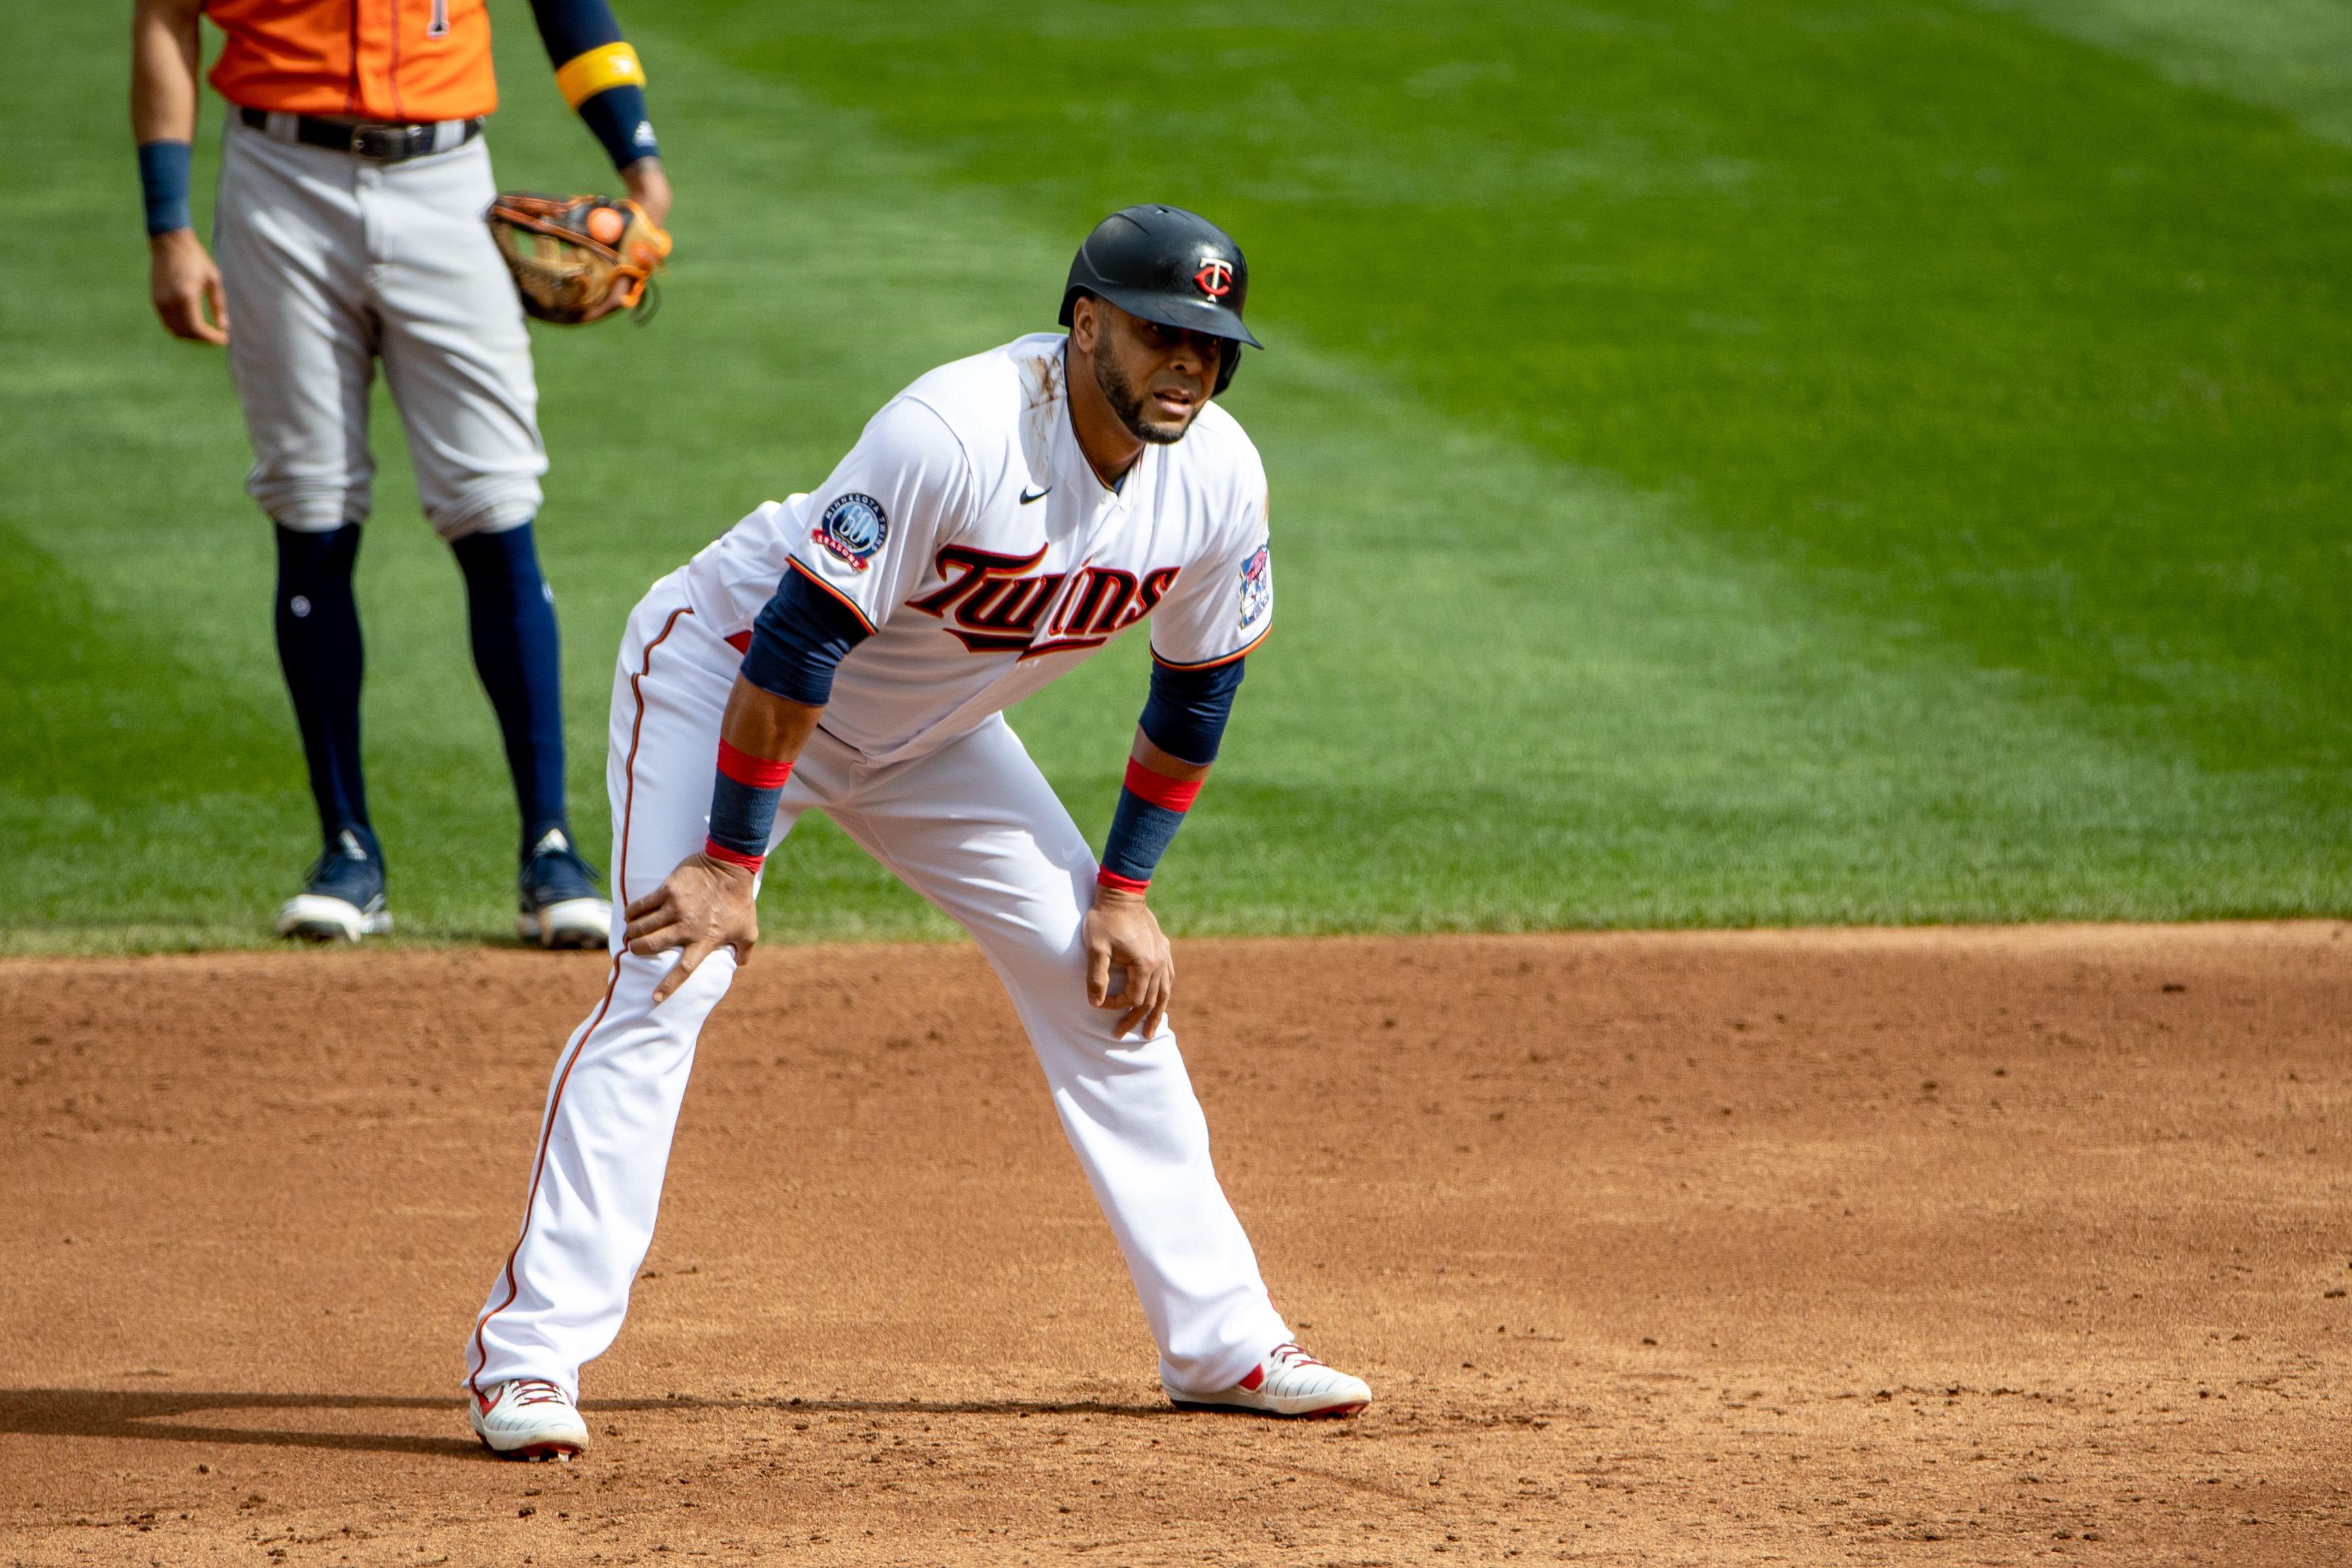 Minnesota Twins designated hitter Nelson Cruz (23) looks on after hitting an RBI double in the third inning against the Houston Astros at Target Field